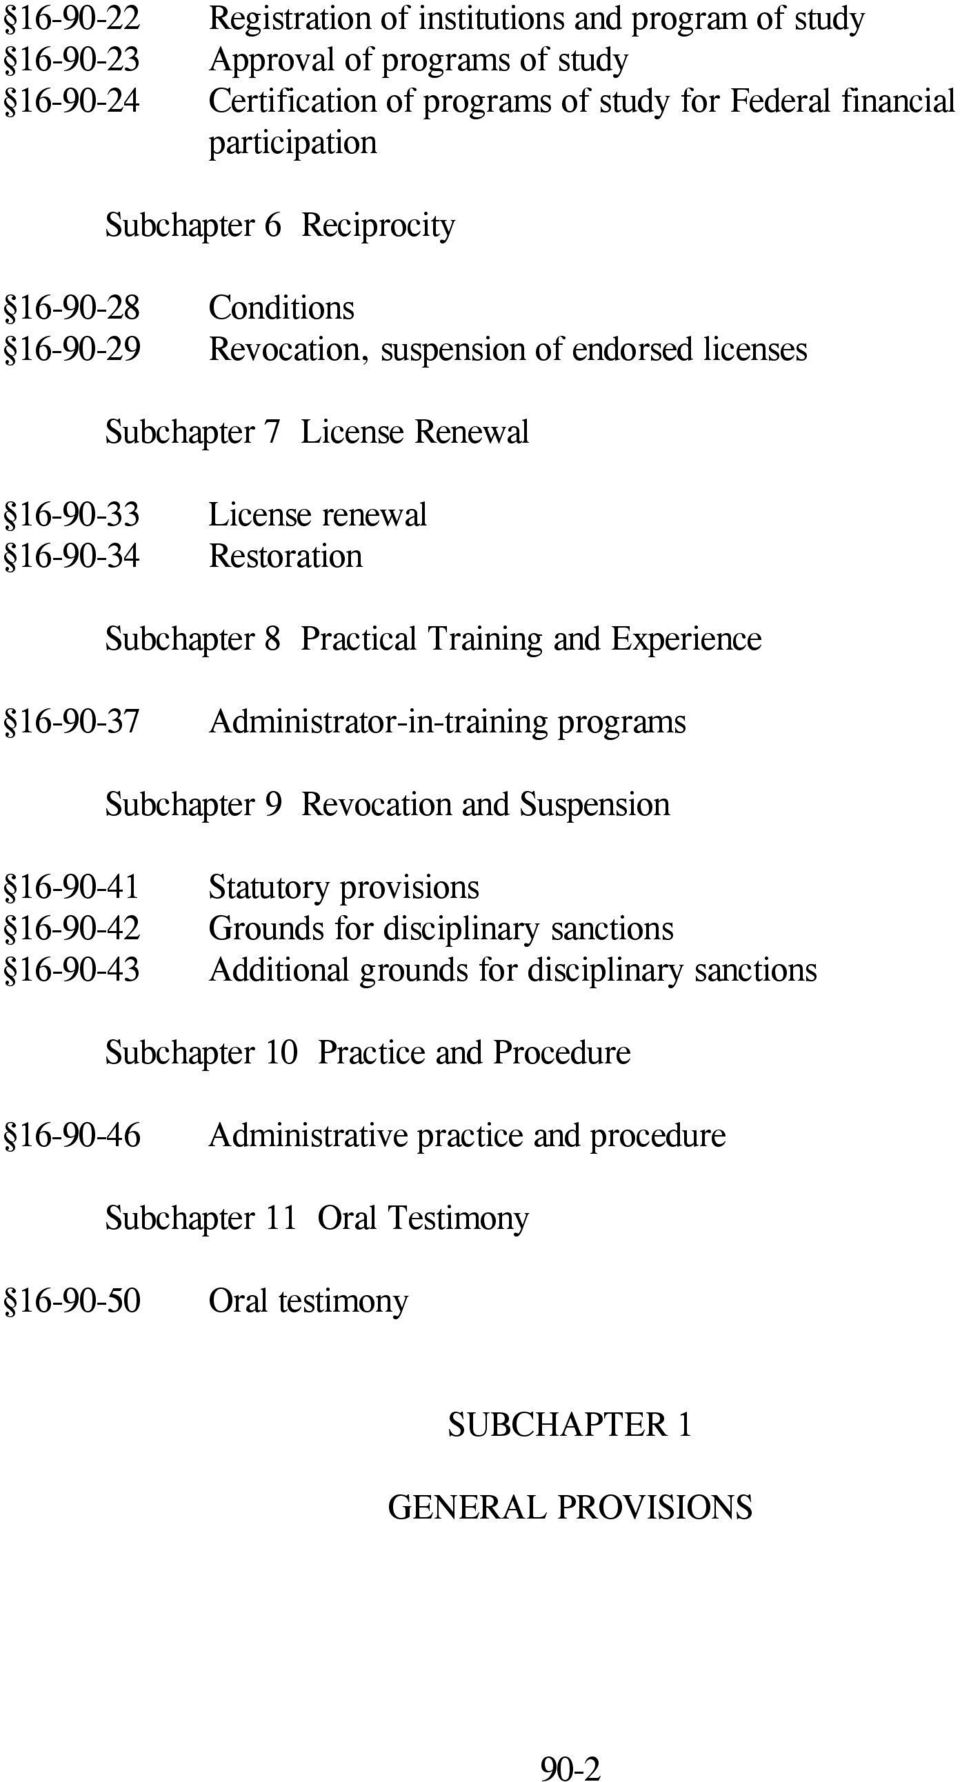 Experience 16-90-37 Administrator-in-training programs Subchapter 9 Revocation and Suspension 16-90-41 Statutory provisions 16-90-42 Grounds for disciplinary sanctions 16-90-43 Additional grounds